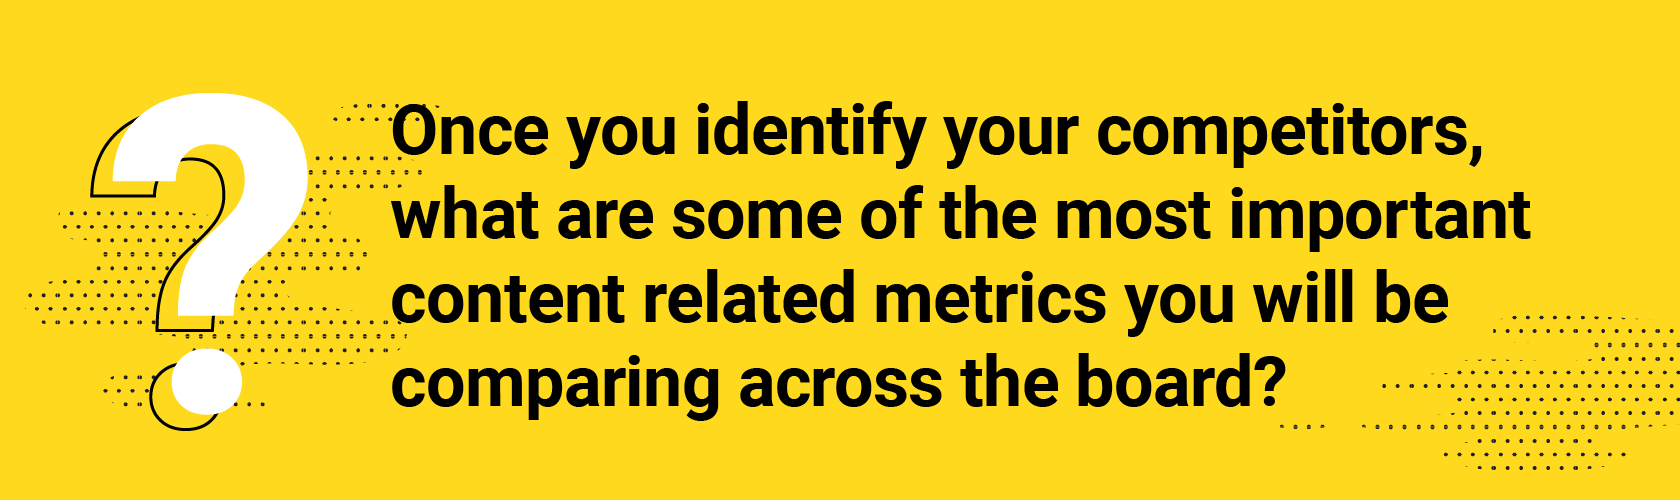 Q5. Once you identify your competitors, what are some of the most important content related metrics you will be comparing across the board?